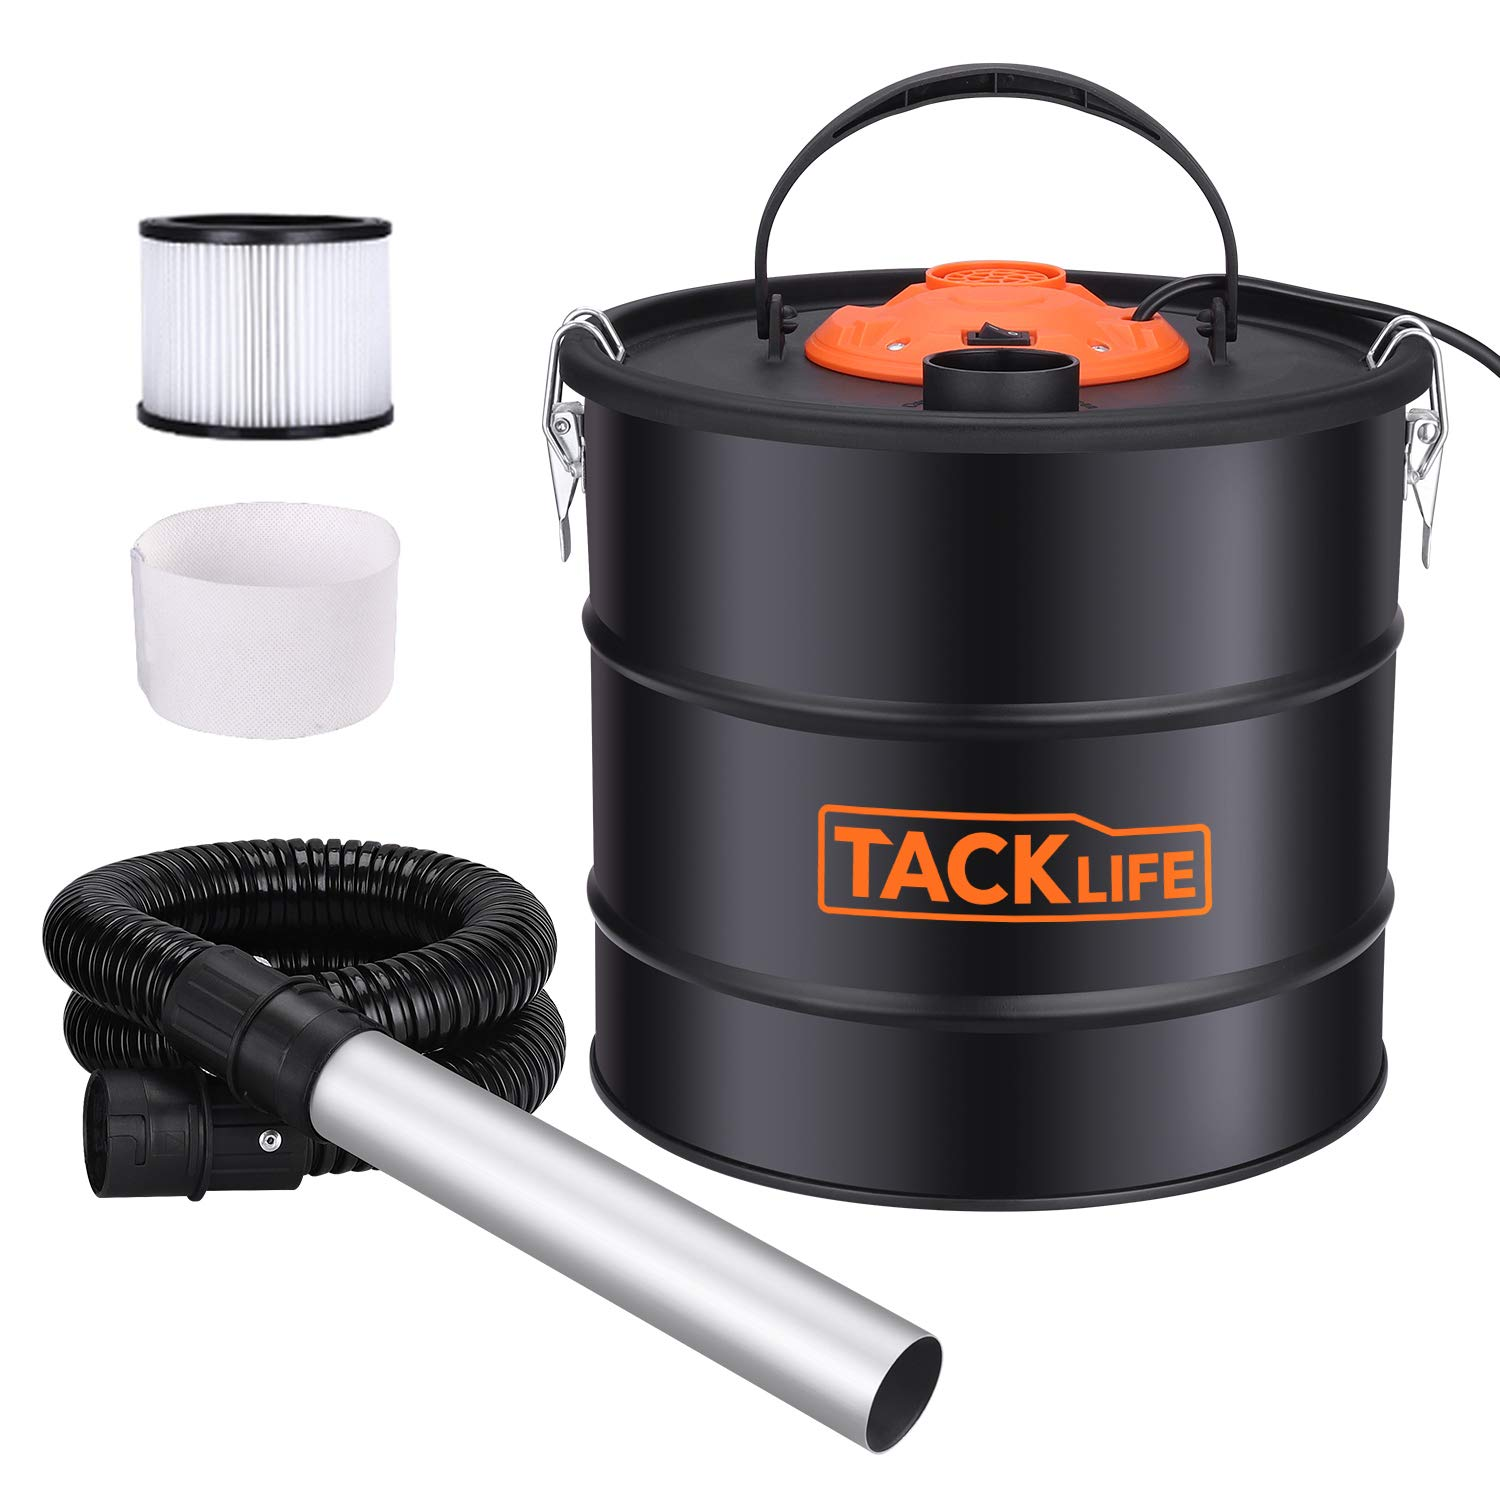 Ash Vacuum, TACKLIFE 800W Ash Vacuum Cleaner Ash VAC Canister 5 Gallon Capacity Bagless Debris/Dust/Ash Collector, Suitable for Fire, Log Burners, Stoves-PVC03A by TACKLIFE